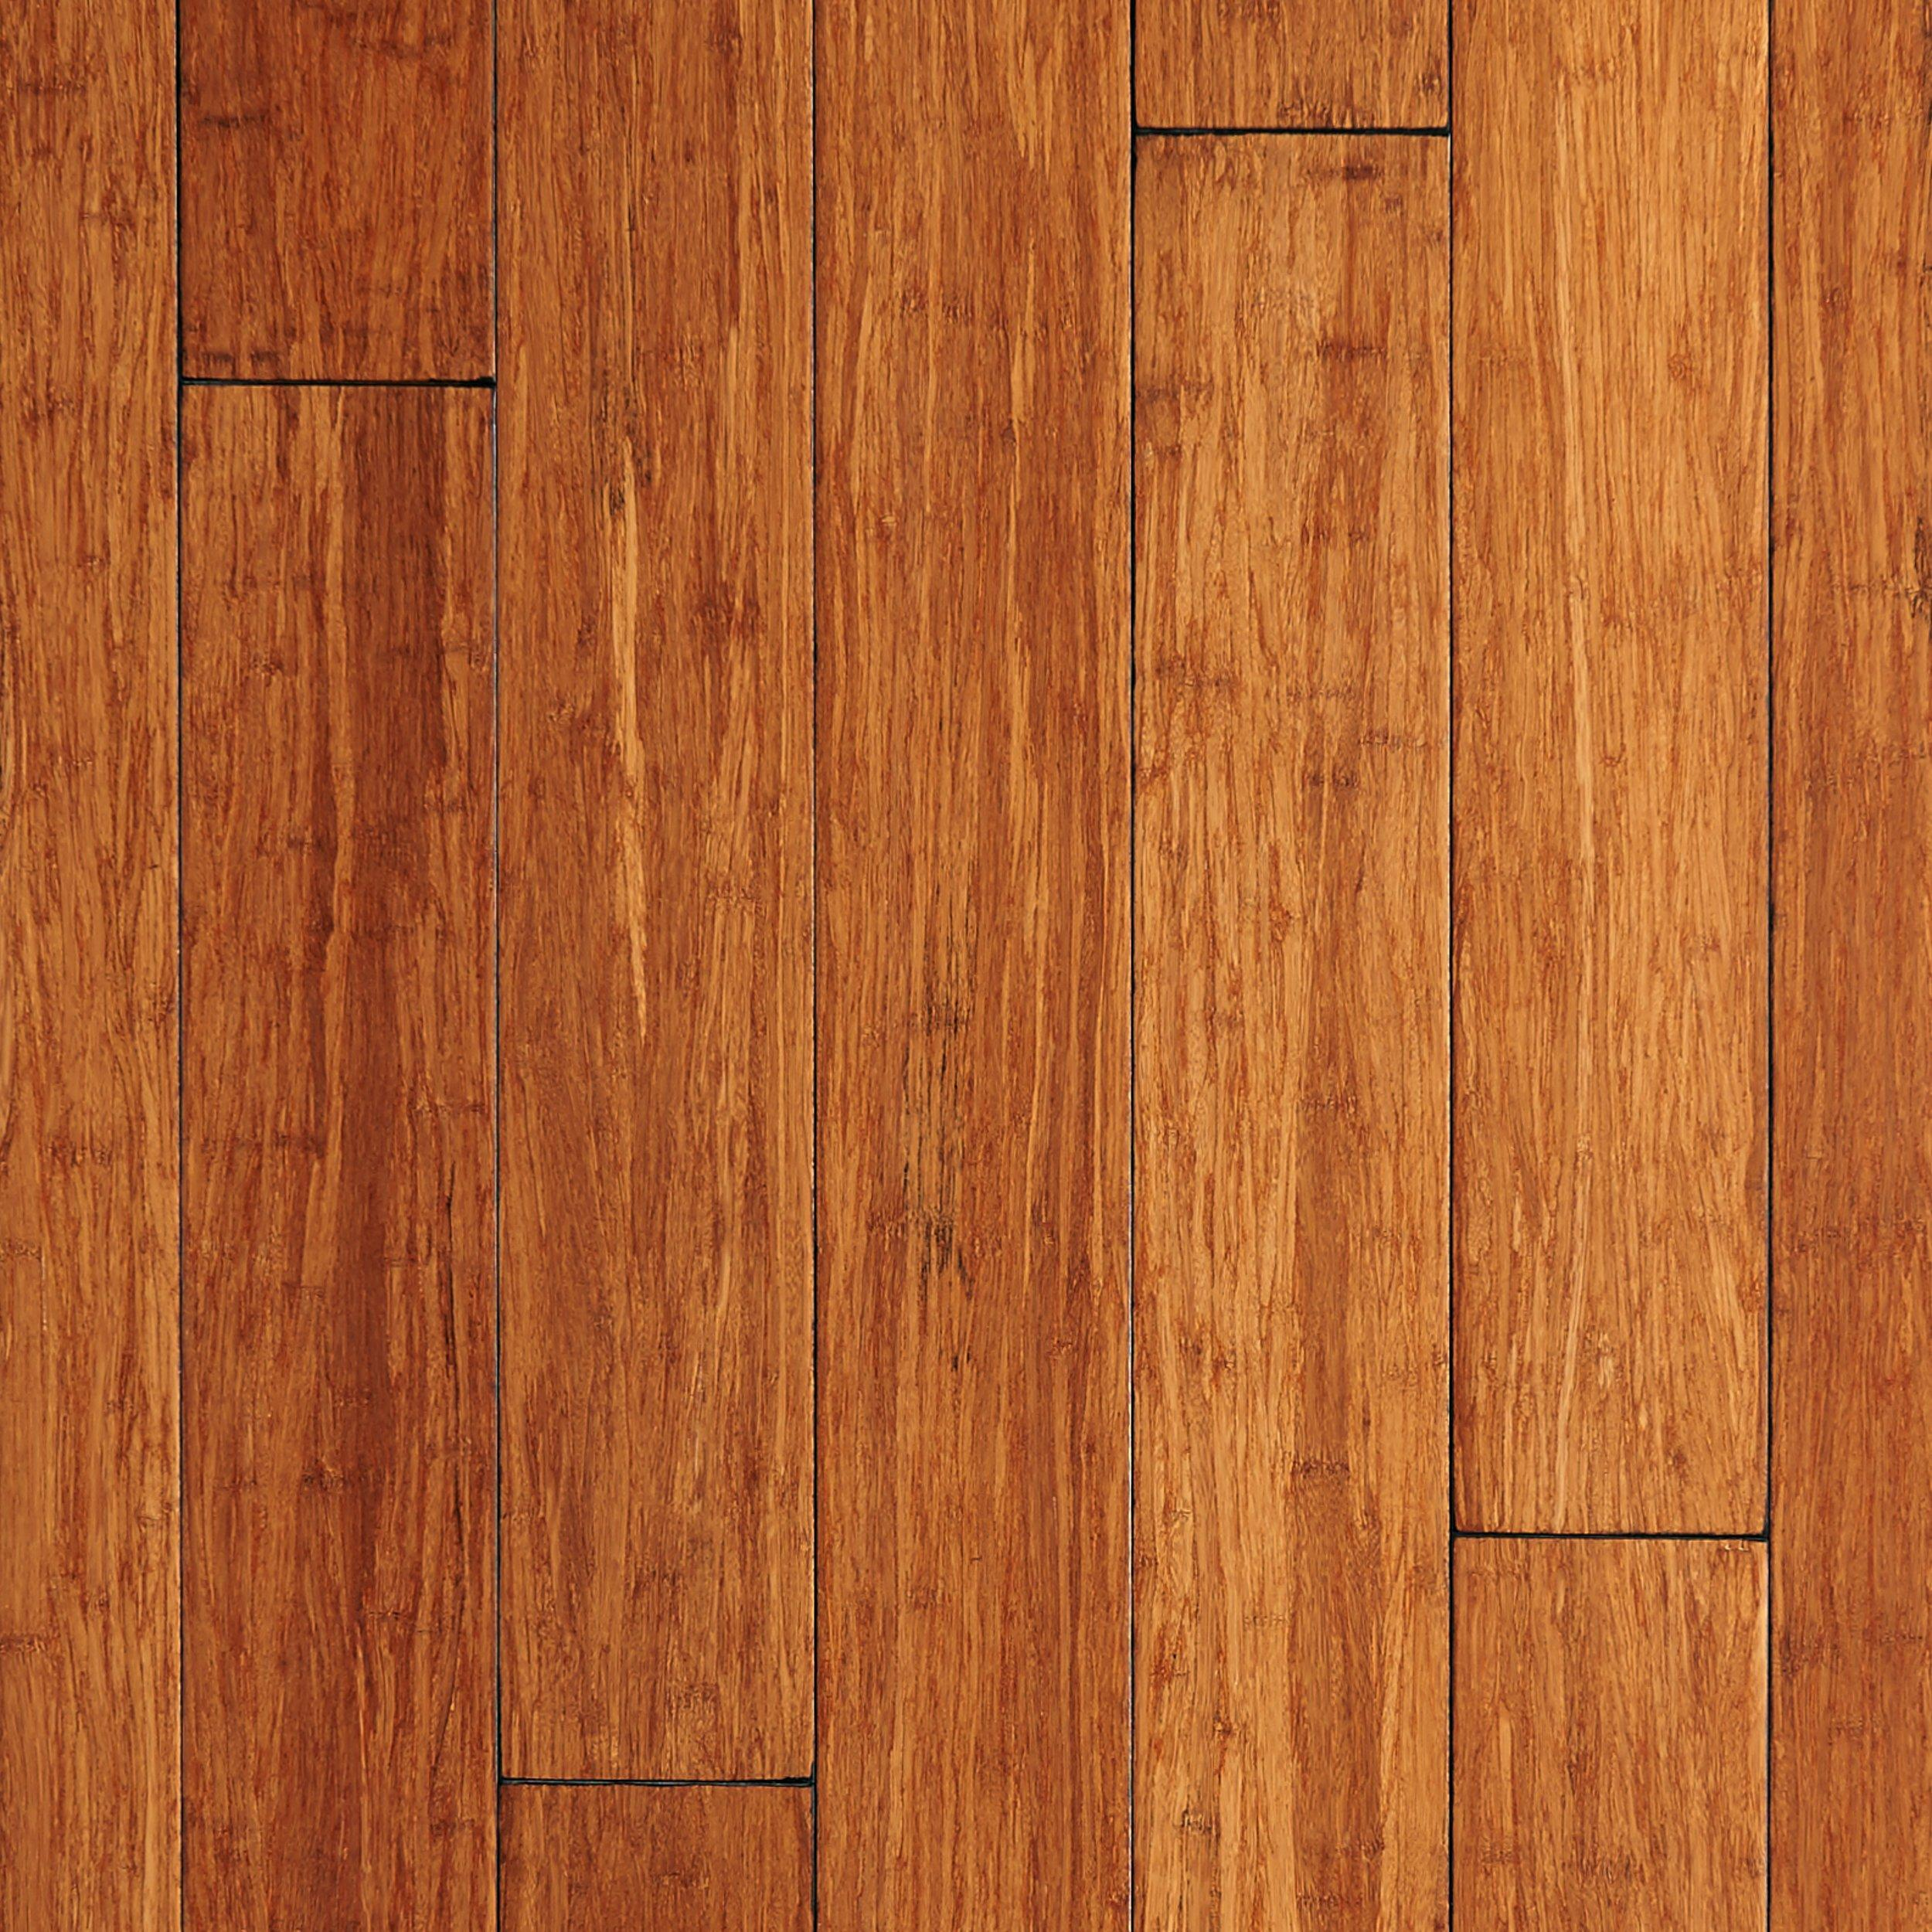 ecoforest patina hand scraped solid stranded bamboo 12in x 5in floor and decor